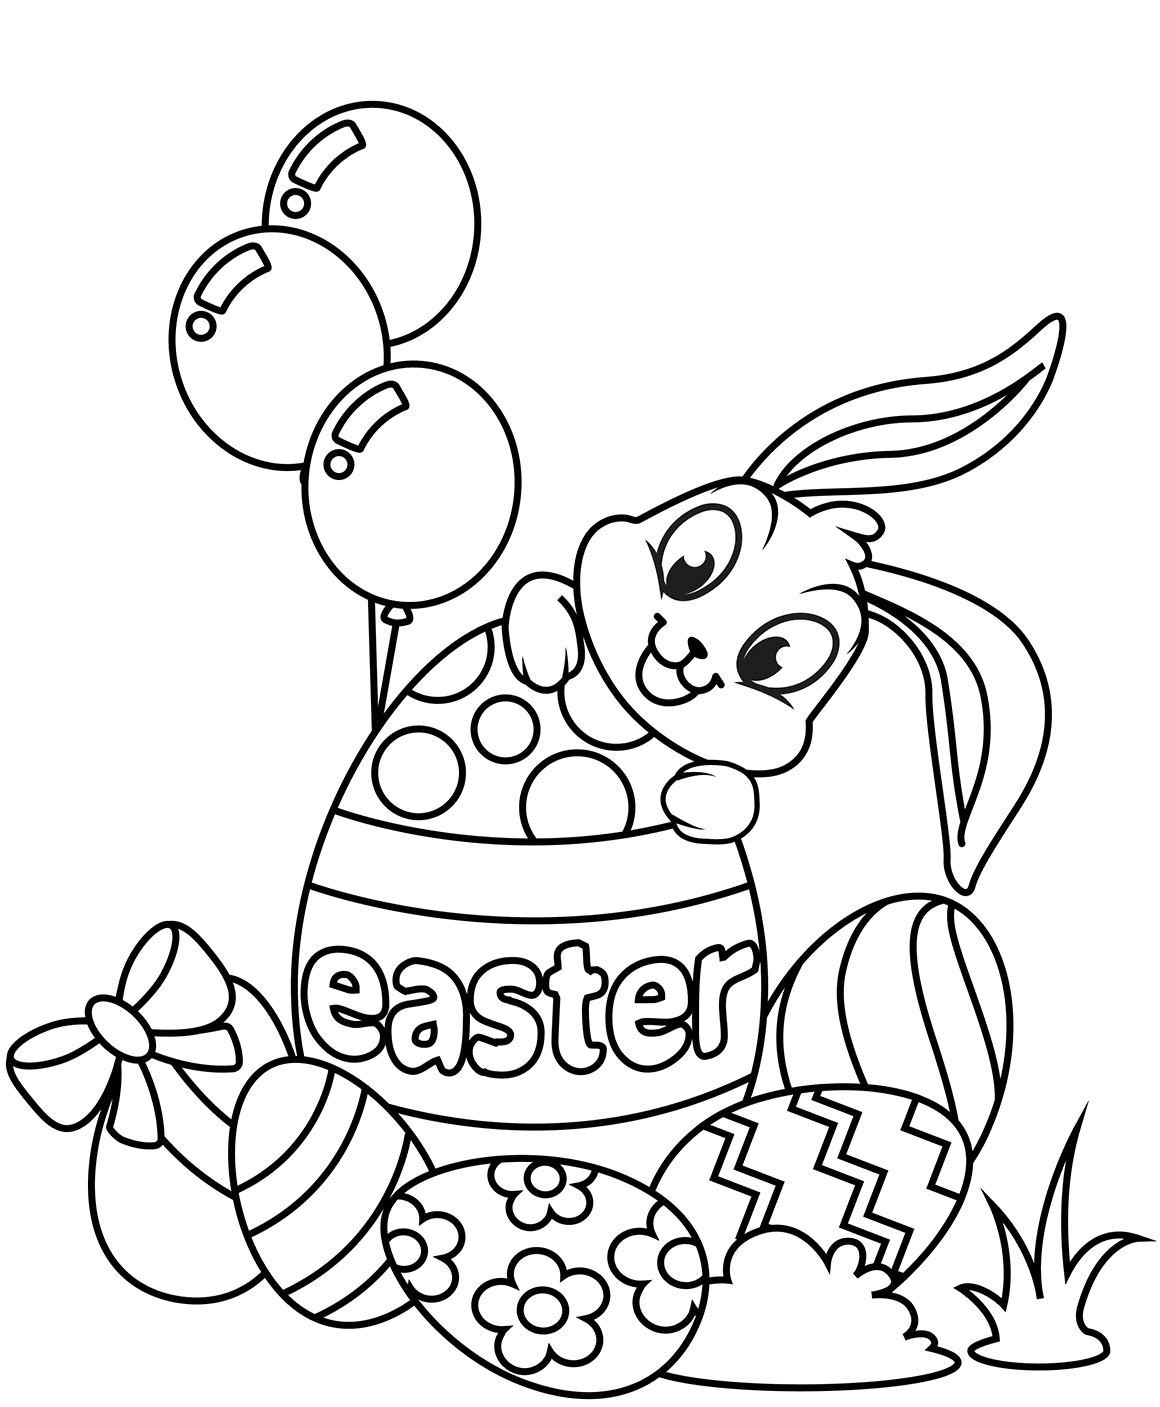 30 Free Easter Bunny Coloring Pages Printable